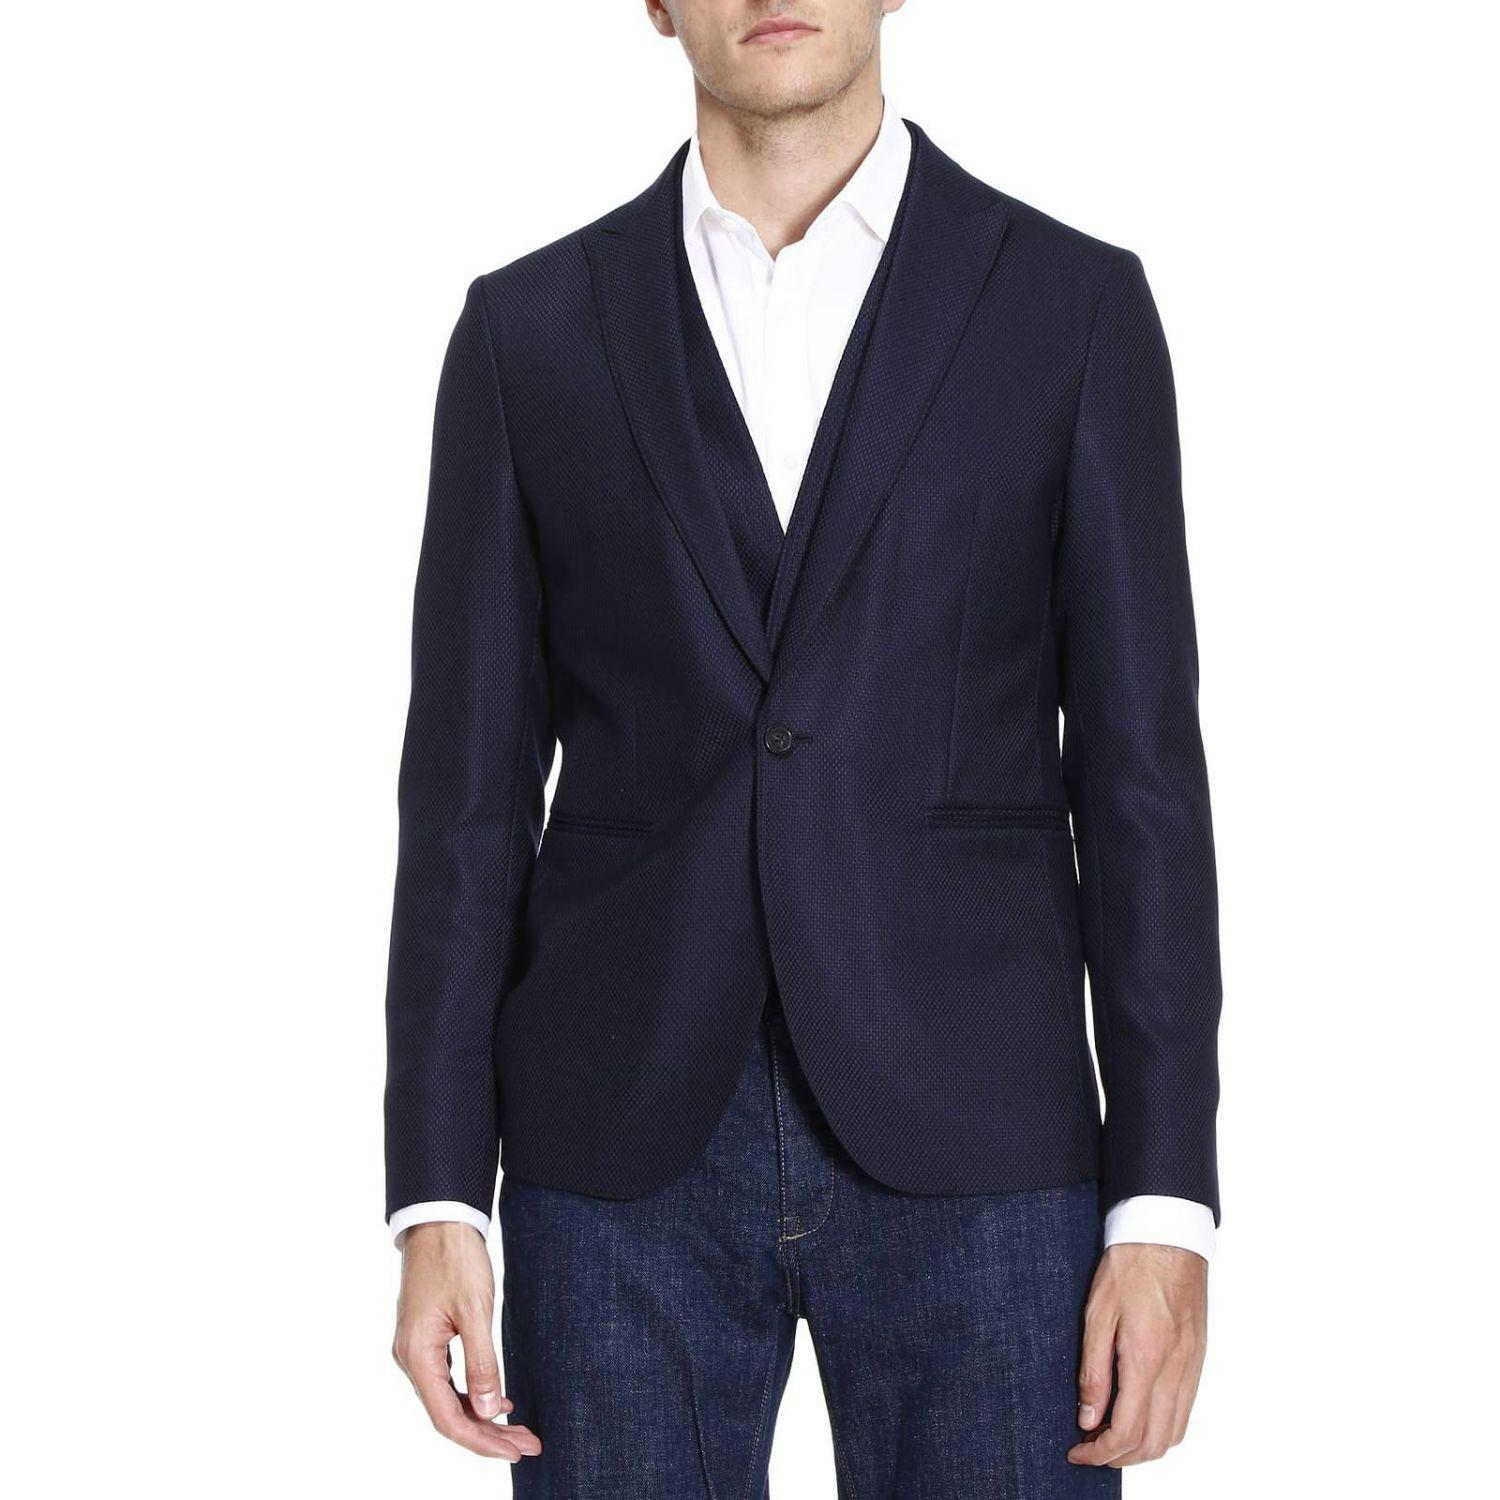 Online shopping for Clothing from a great selection of Suits, Blazers, Tuxedos, Suit Jackets, Suit Trousers & more at everyday low prices.